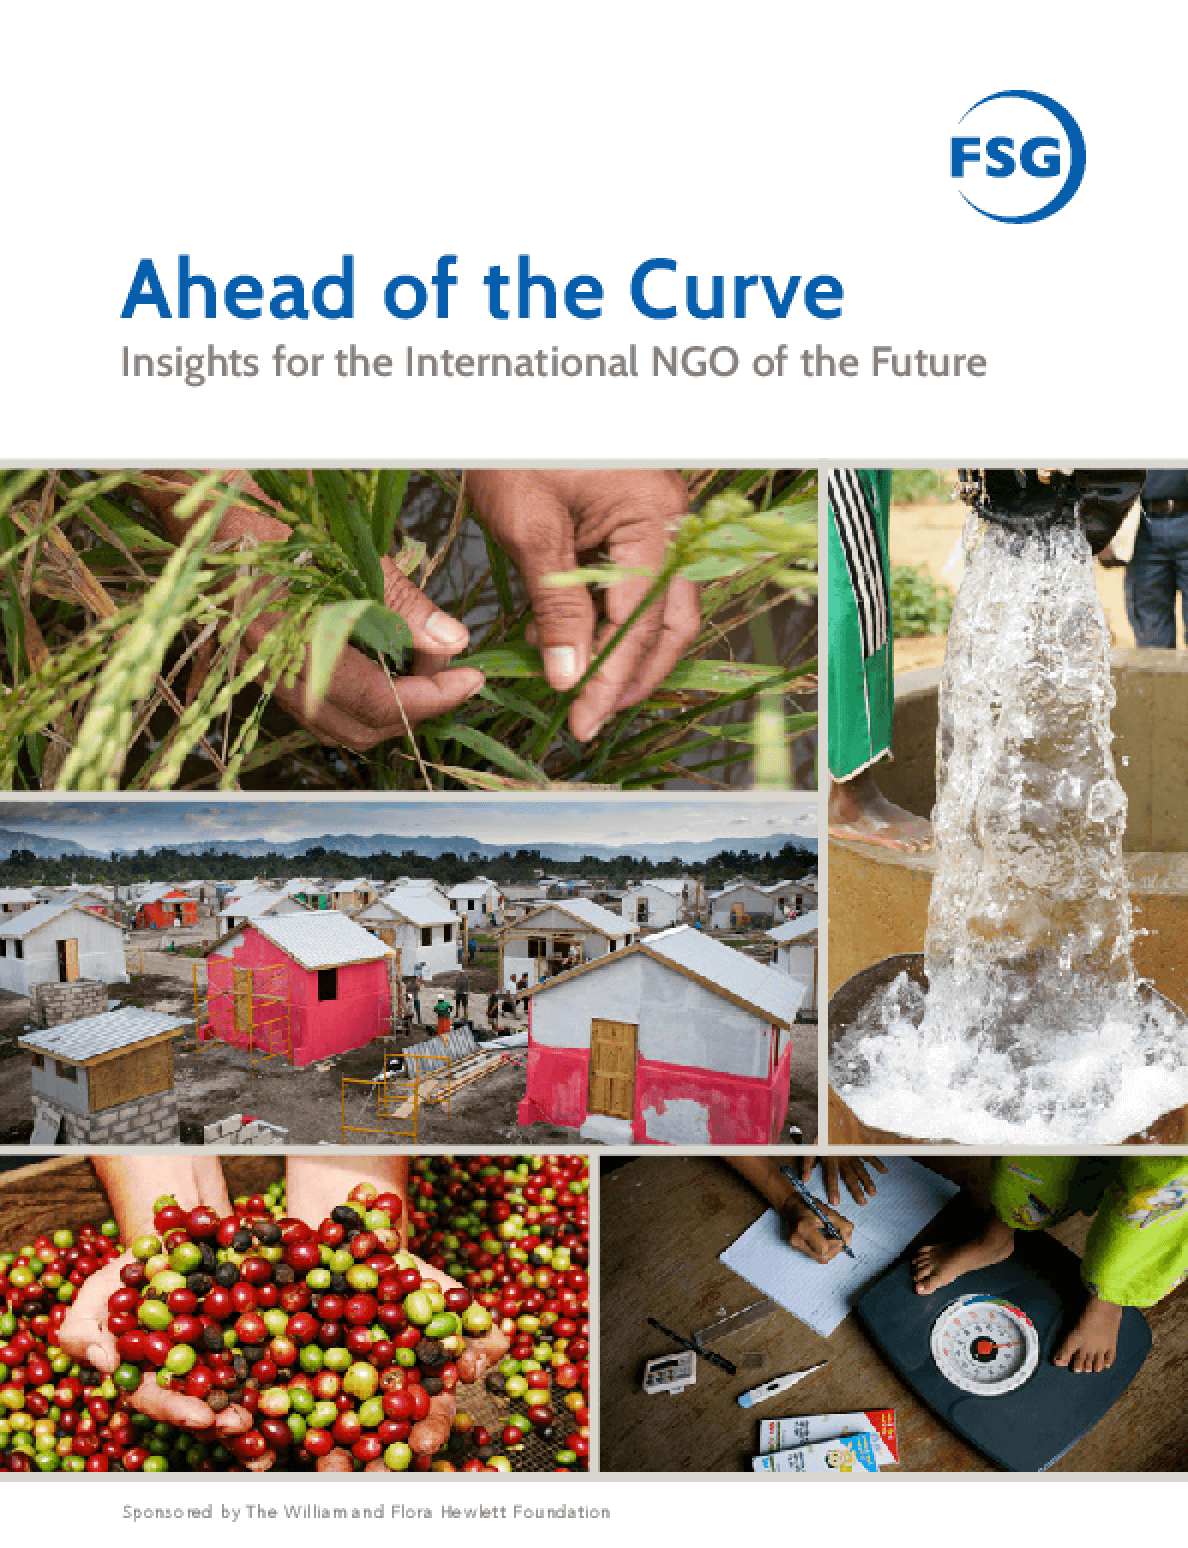 Ahead of the Curve: Insights for the International NGO of the Future